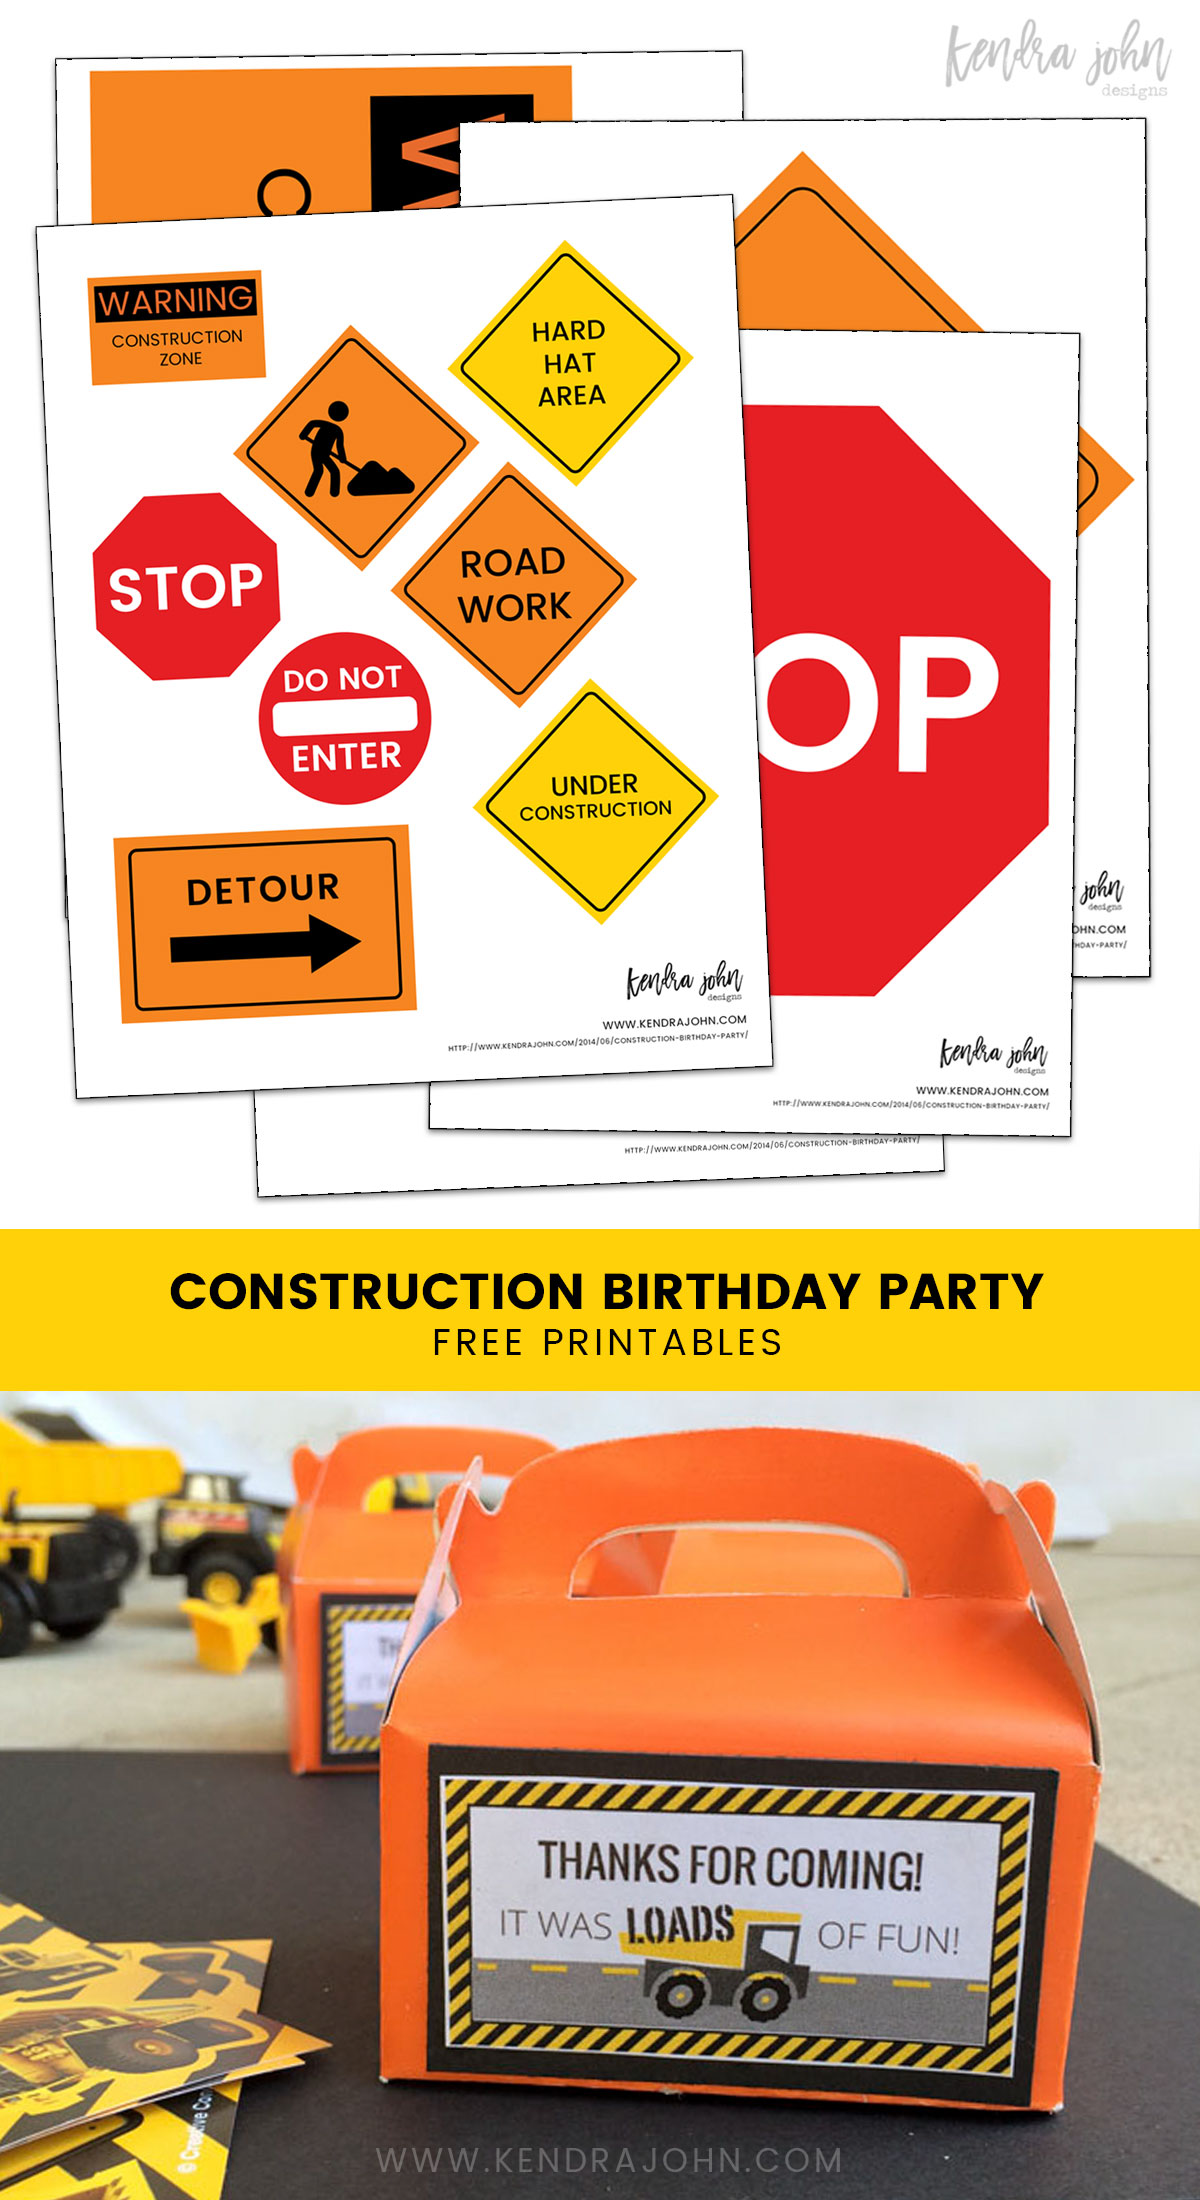 photo regarding Printable Construction Signs named Straightforward Framework Birthday Social gathering Guidelines in addition Cost-free Printables!